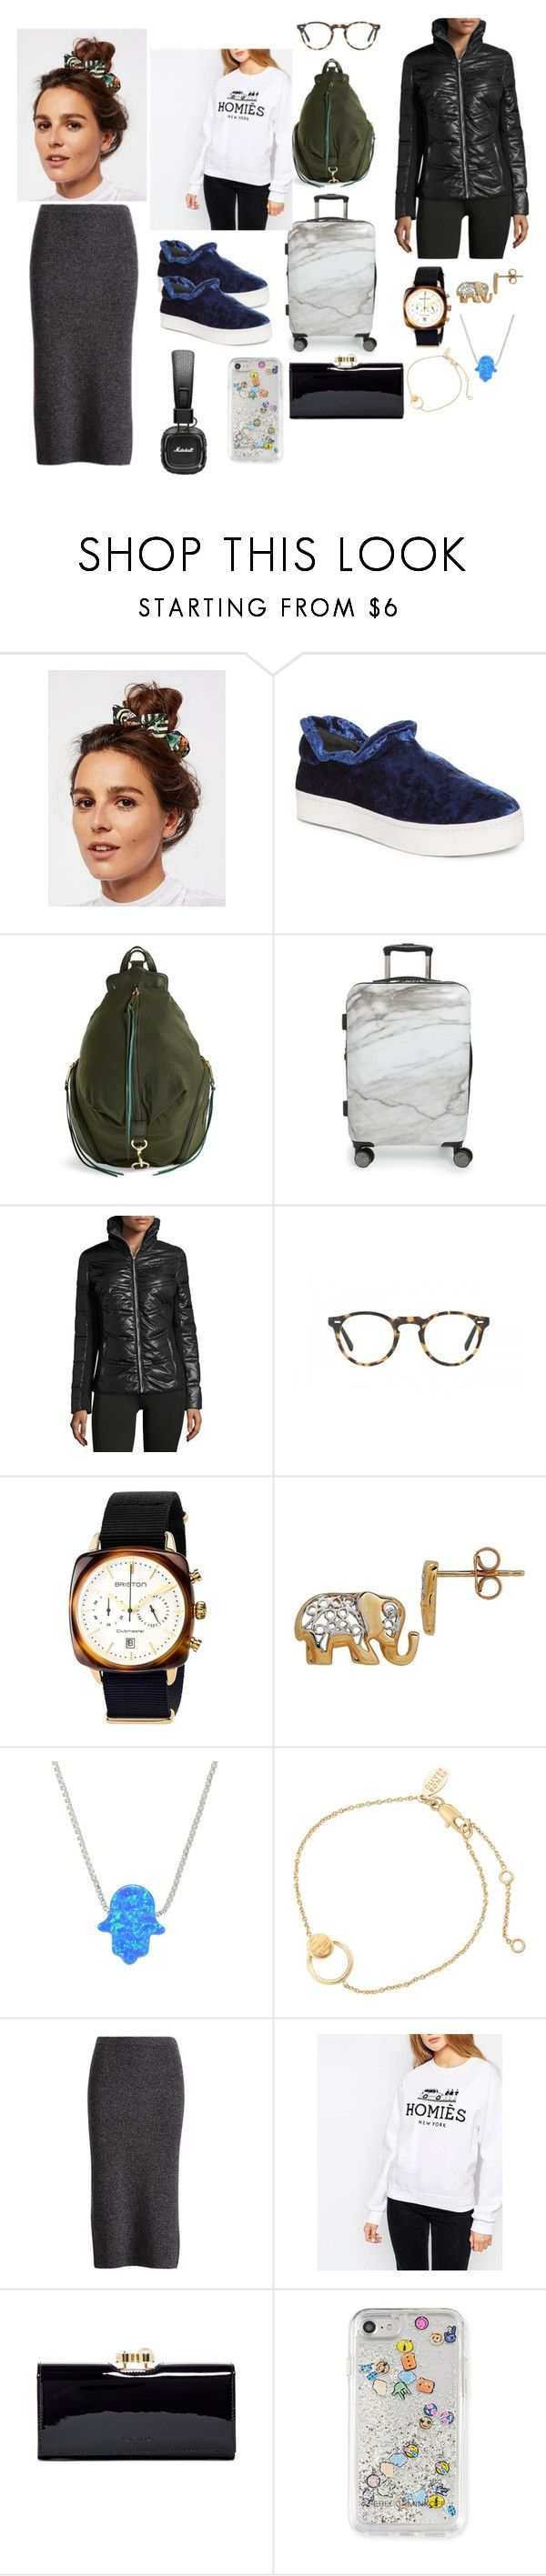 """""""✌🏻 Out Israel :("""" by design360 ❤ liked on Polyvore featuring Free People, Opening Ceremony, Rebecca Minkoff, CalPak, Marc New York, Oliver Peoples, Lord & Taylor, Polo Ralph Lauren and Ted Baker"""